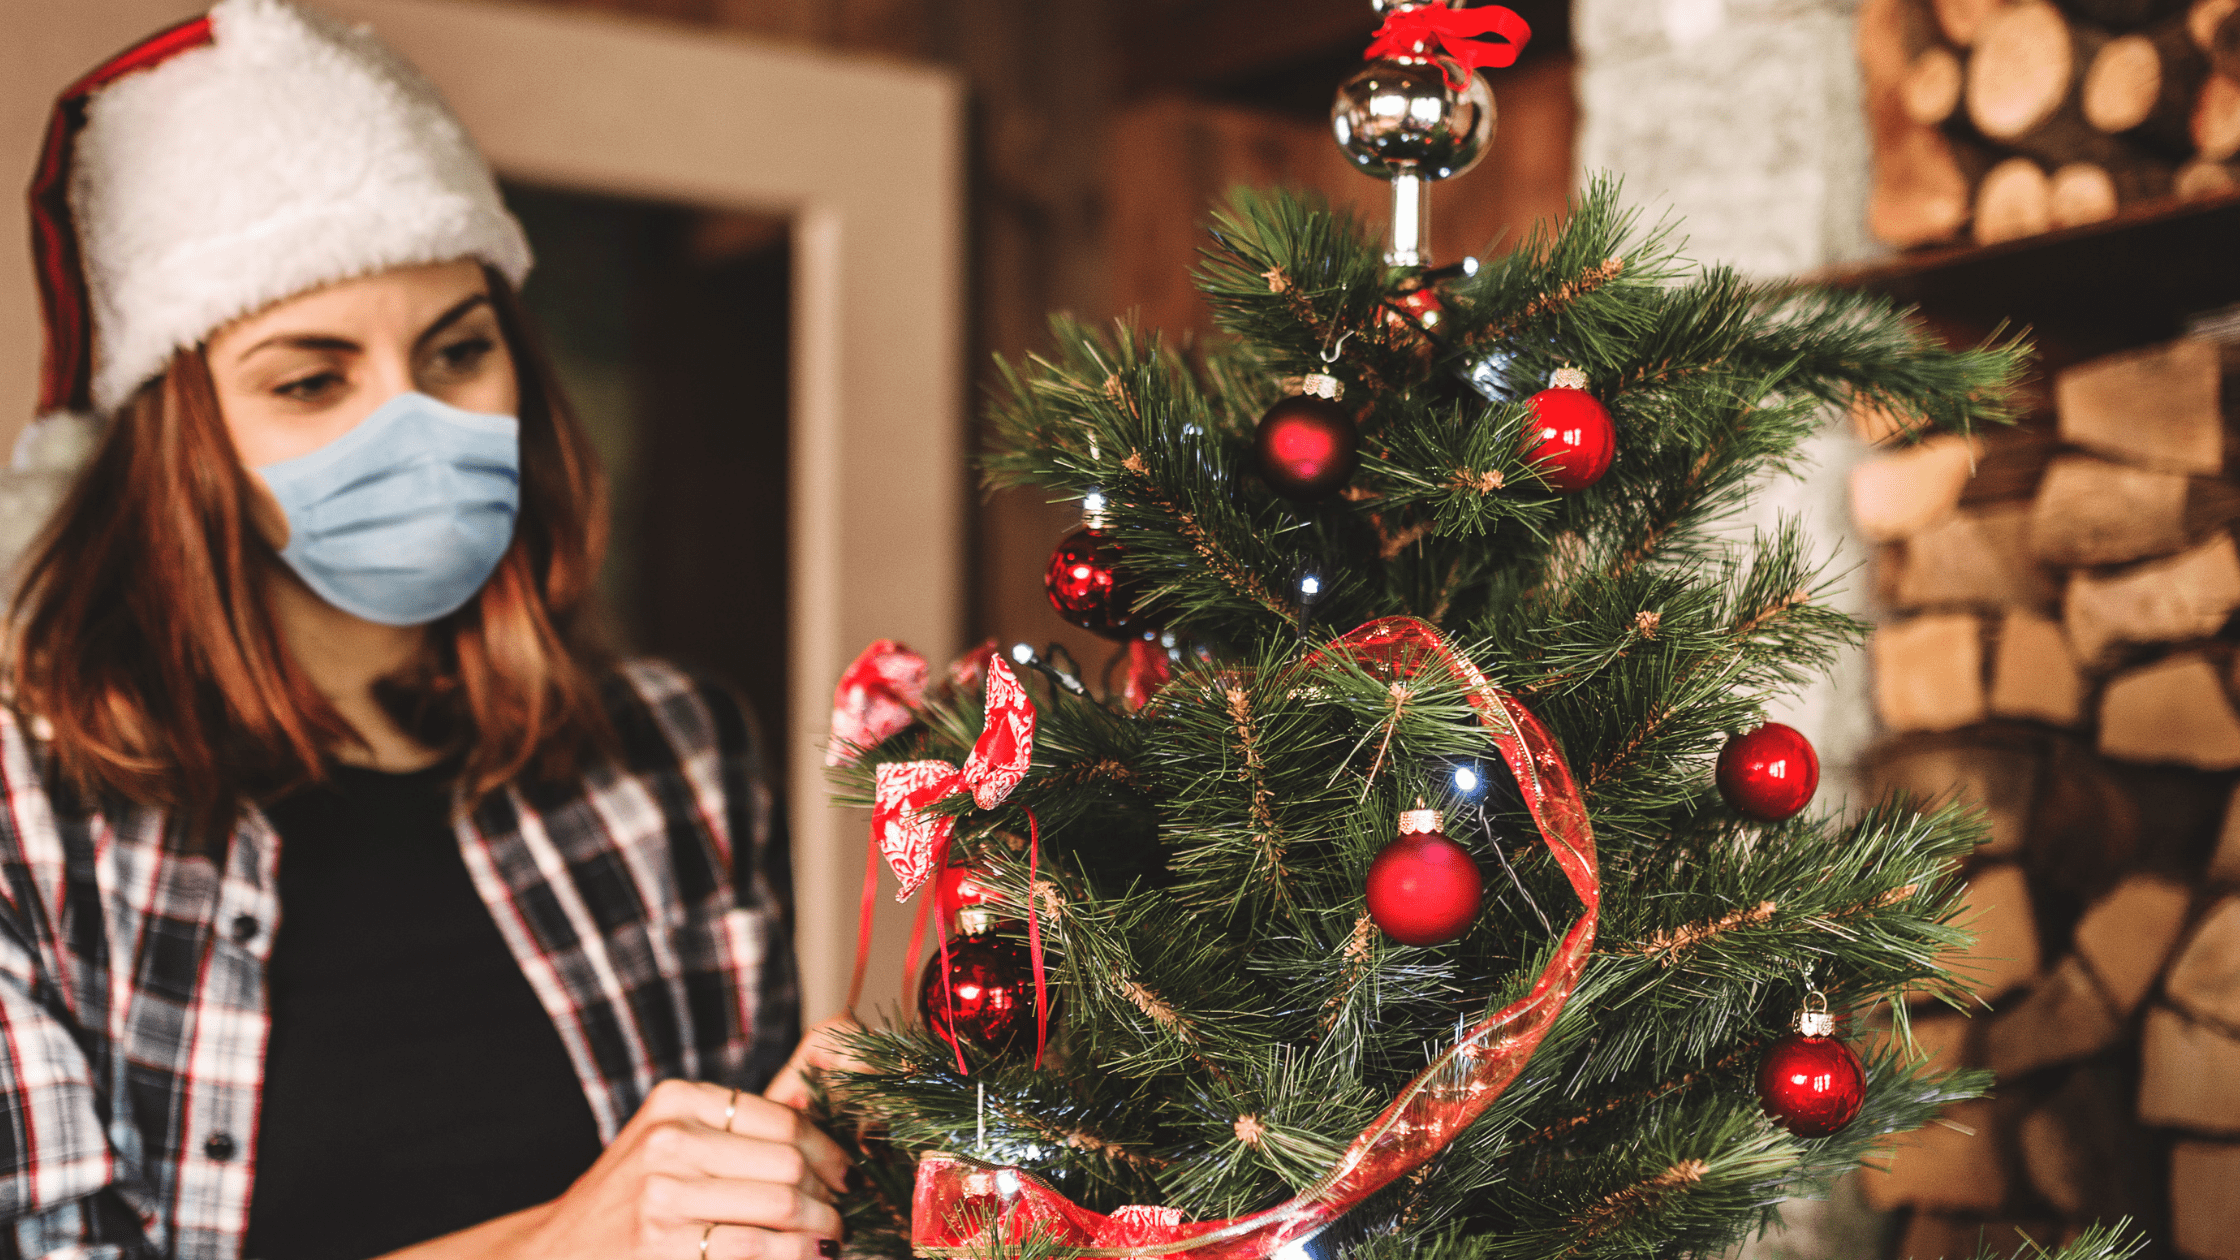 Woman with face mask and Santa hat on decorating her Christmas tree.